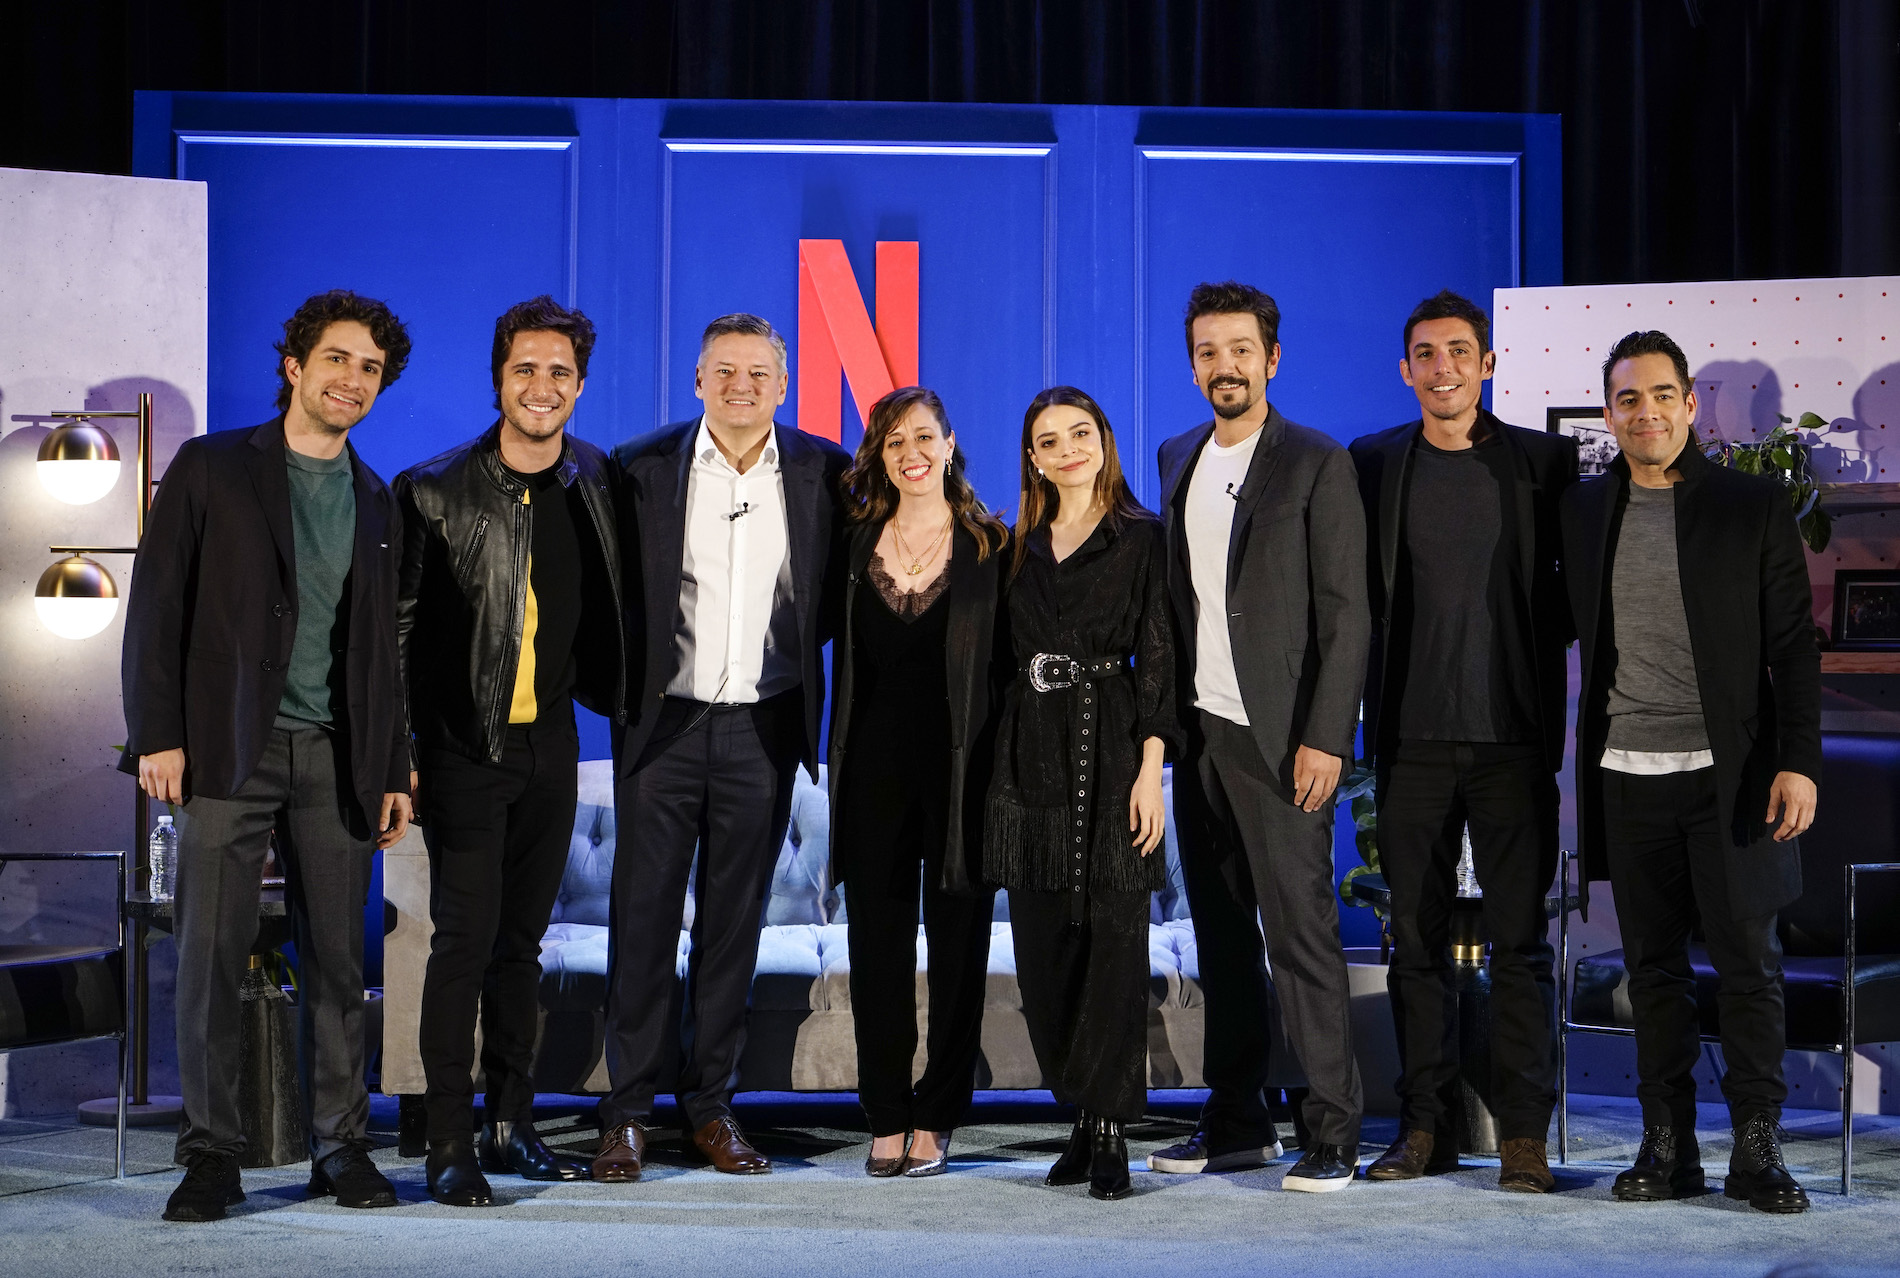 Netflix Will Release 50 Movies & Series Produced in Mexico in the Next Two Years